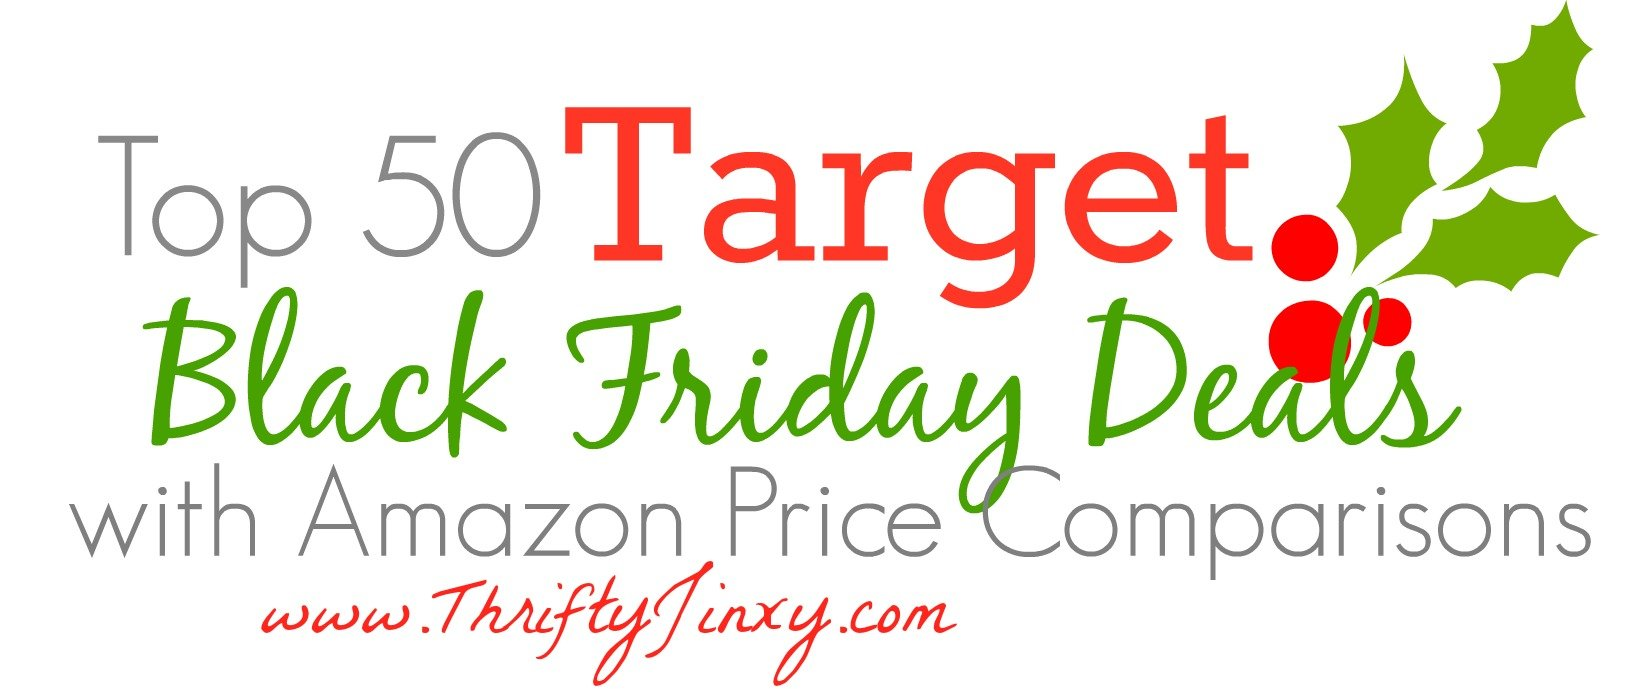 Top 50 Target Black Friday Deals with Amazon Price Comparisons!